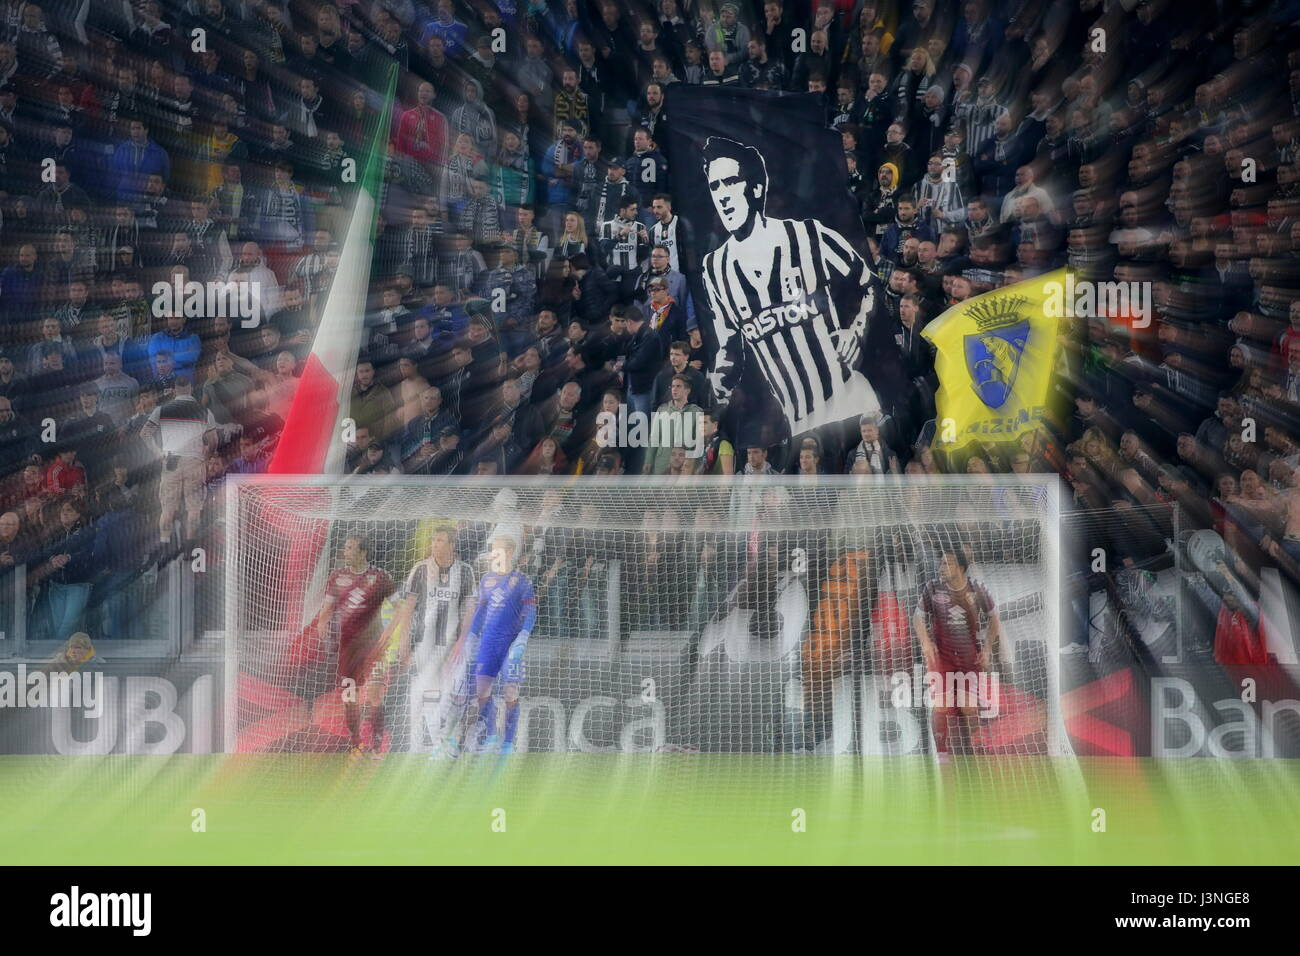 Turin, Italy. 6th May, 2017. The Juventus fans' banner reminds Gaetano Scirea, the historic captain of the Bianconeri Stock Photo